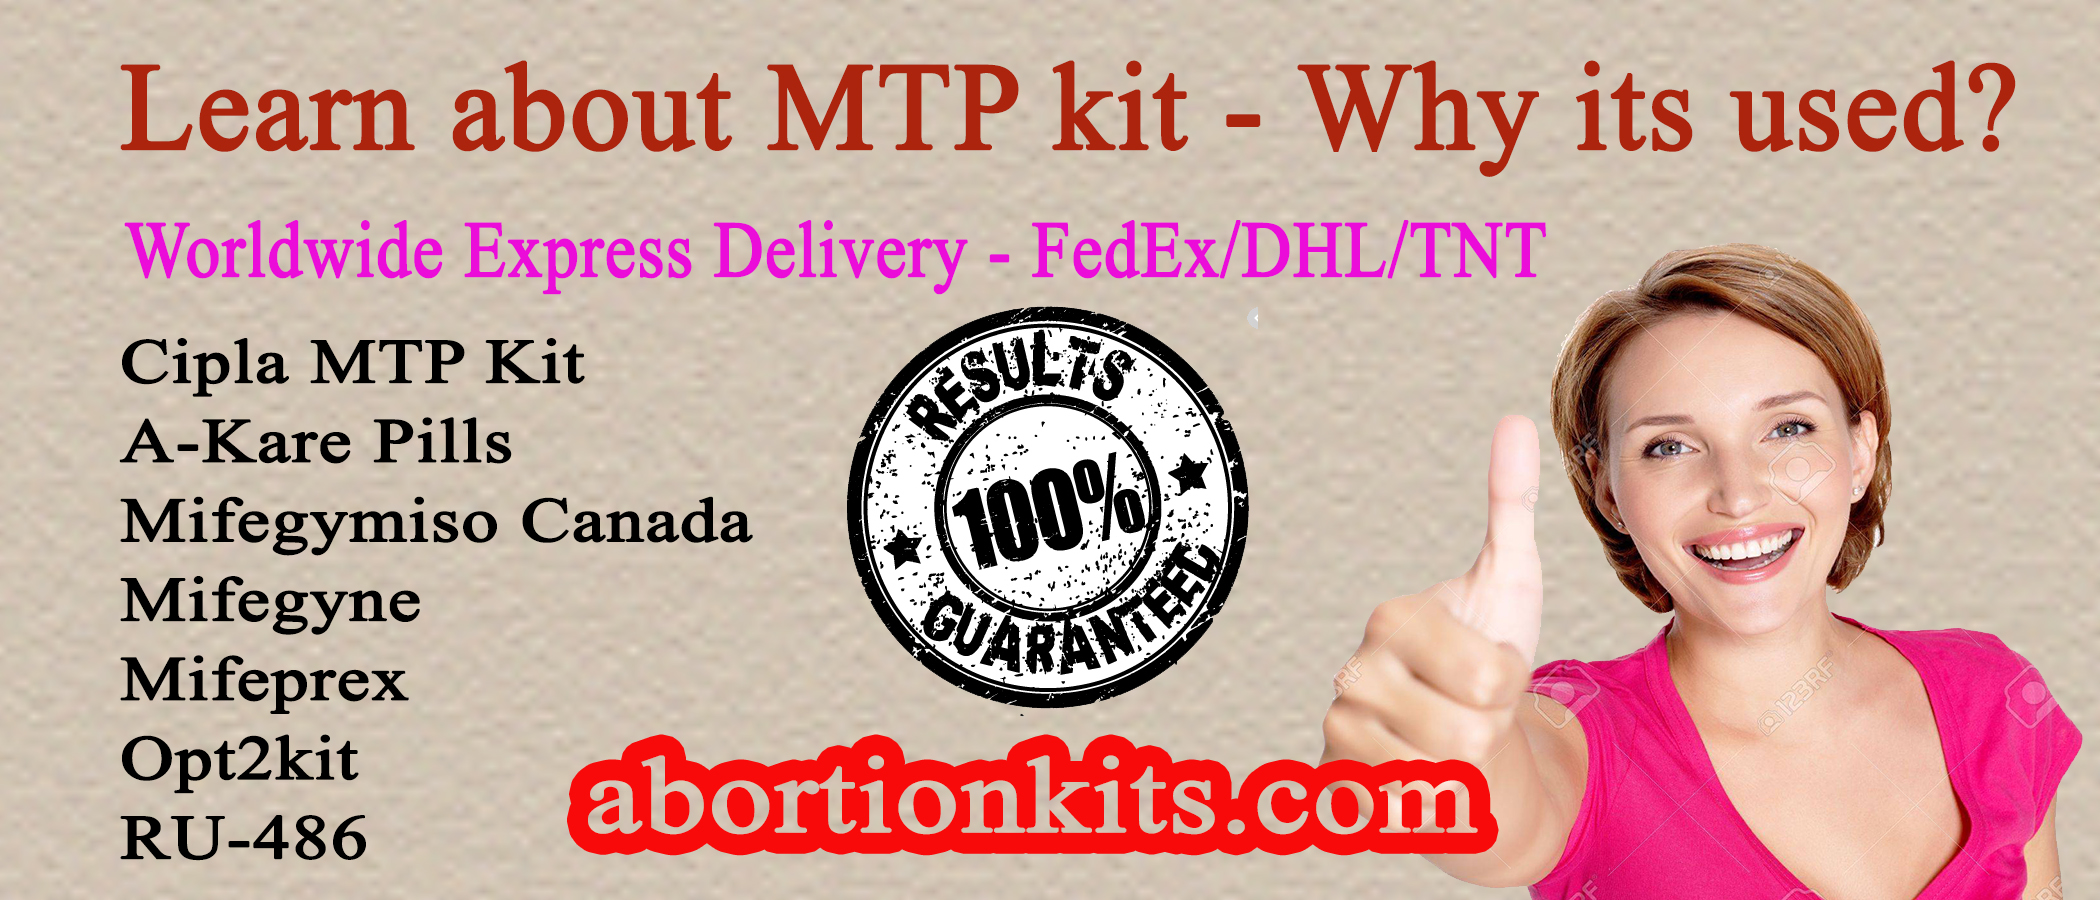 what is mtp kit